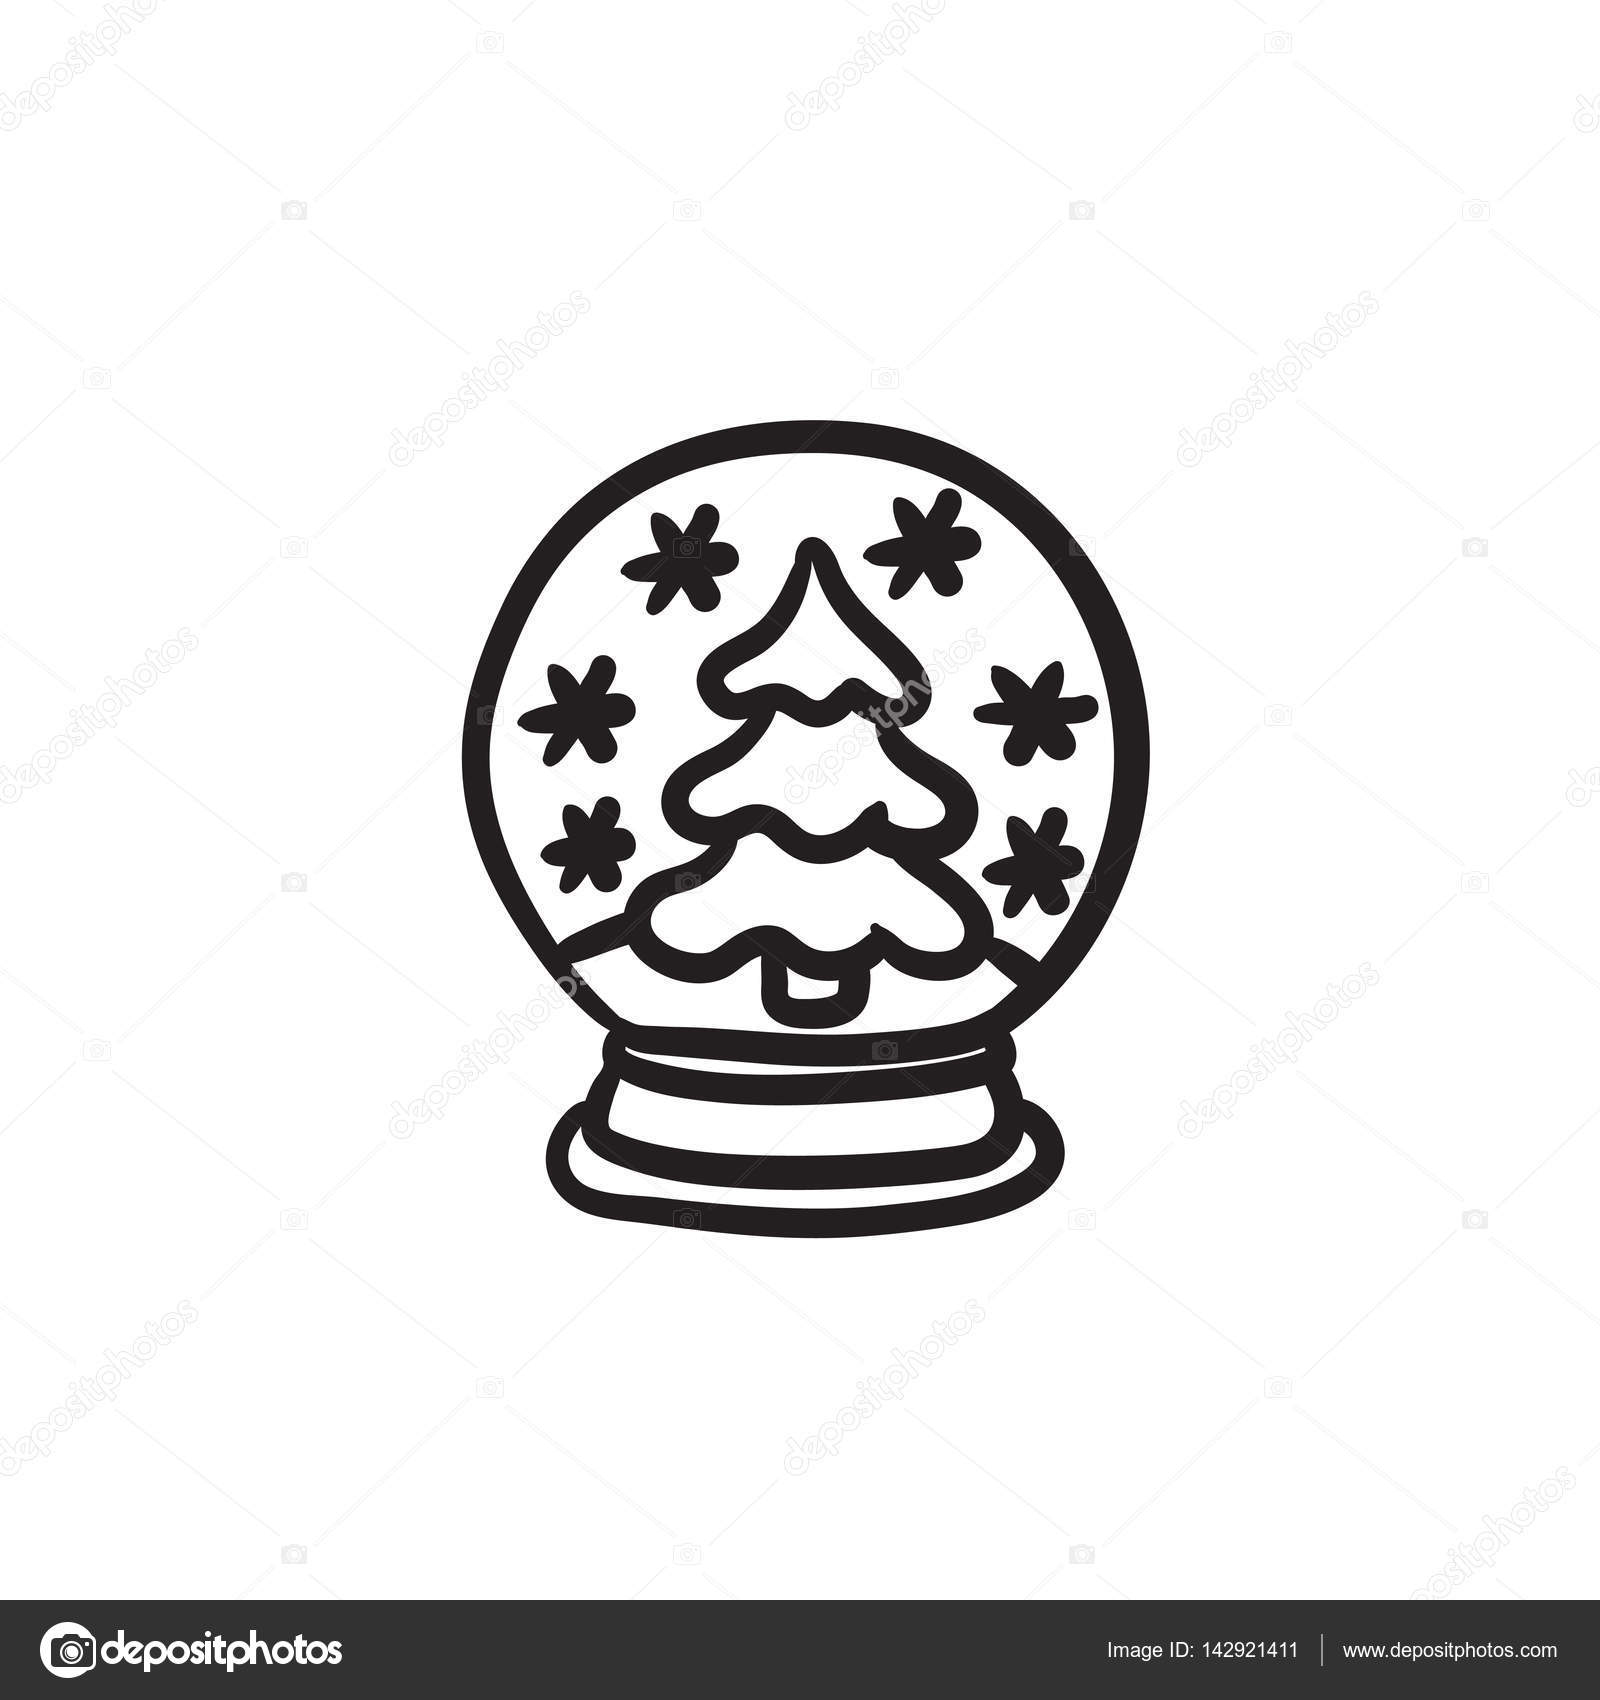 1600x1700 Snow Globe With Christmas Tree Sketch Icon. Stock Vector